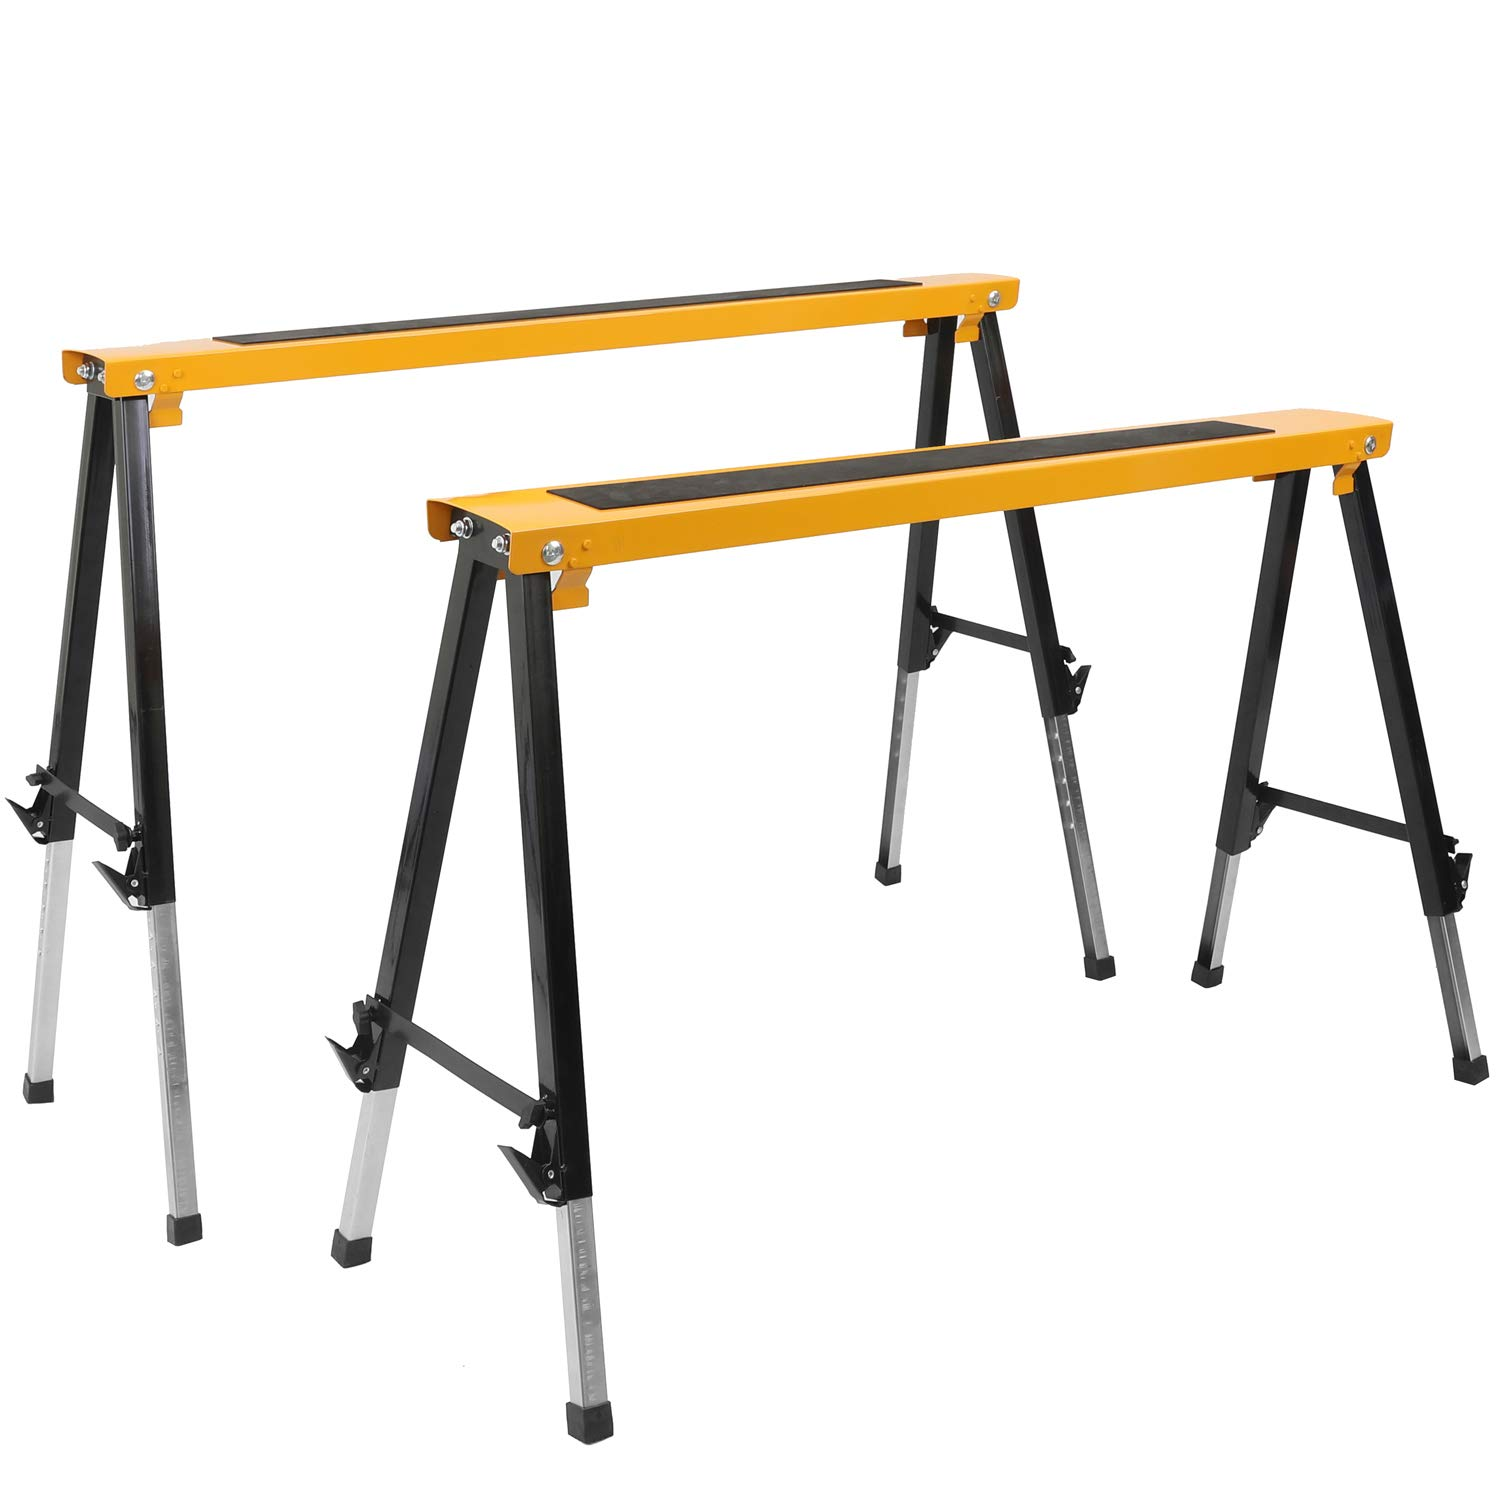 2 Pack Adjustable Saw Horse w/Clamps and Handle Heavy Duty Folding Portable Sawhorse 330lbs Weight Capacity Each by Hromee (Image #1)